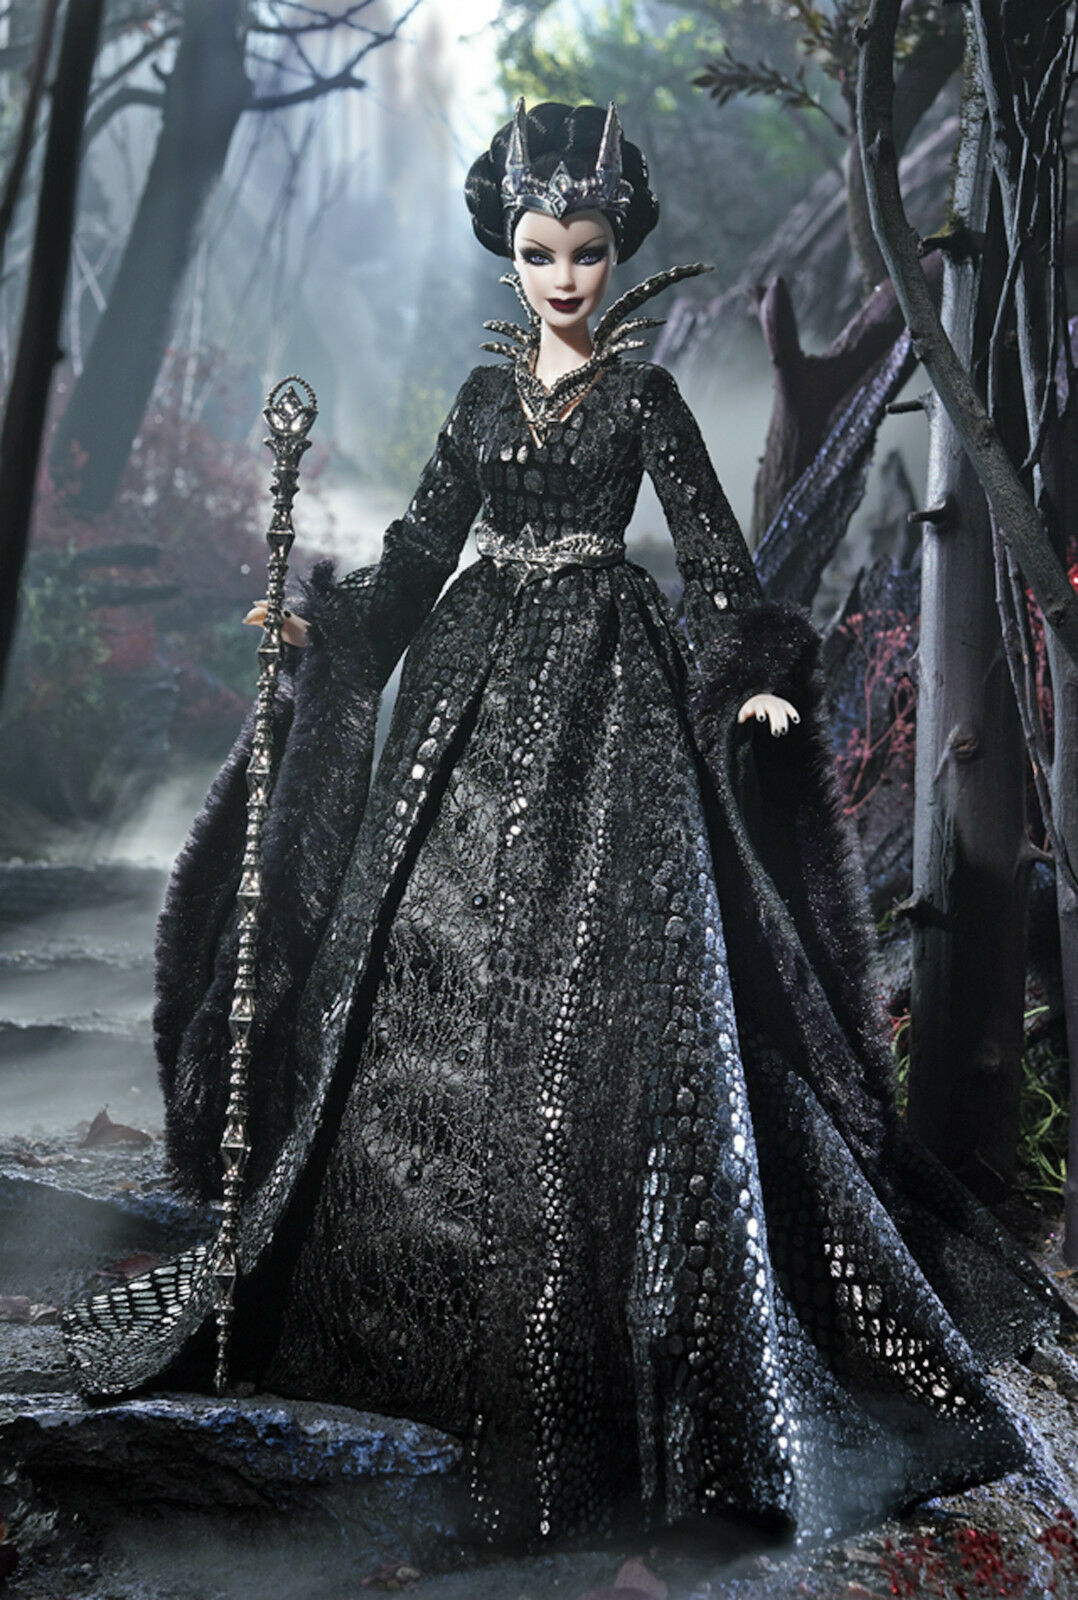 STUNNING FARAWAY FOREST 2015 QUEEN OF THE DARK FOREST BARBIE-NEW IN SHIPPER